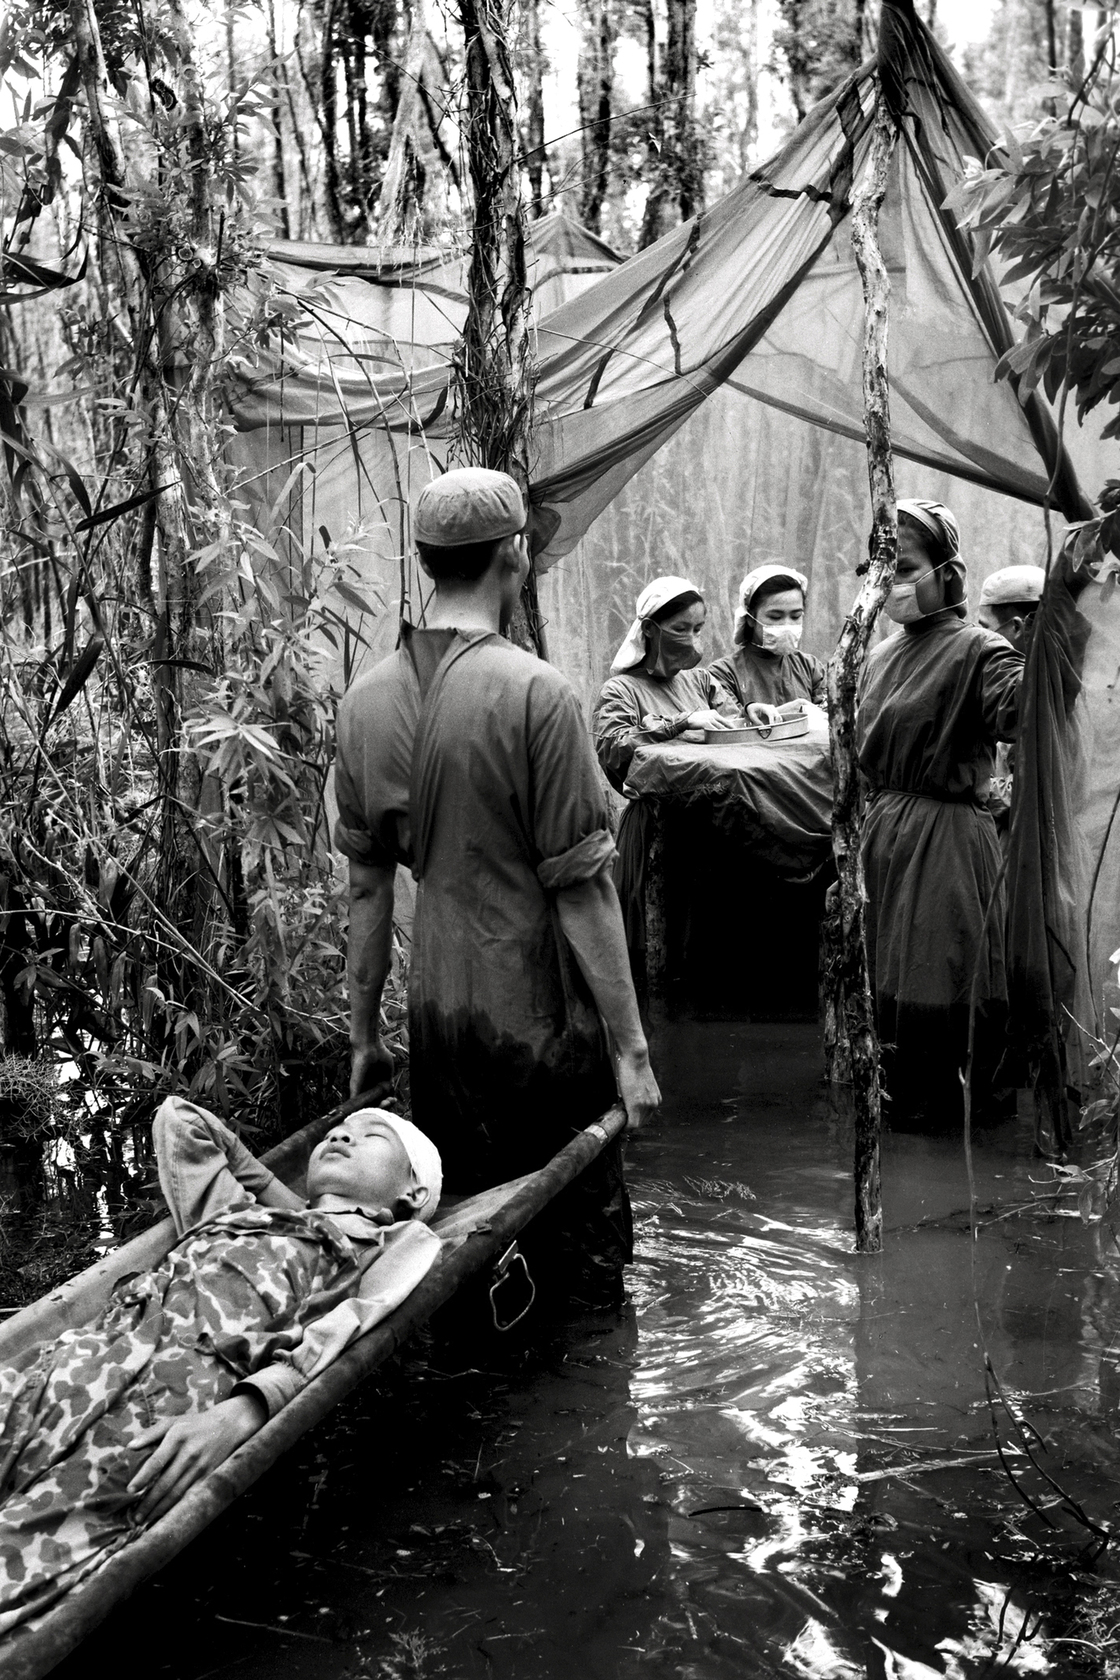 Danh Son Huol, an ethnic Khmer guerrilla, is treated by a medical unit in a swamp in U Minh Forest, Ca Mau peninsula, Vietnam, 1970.